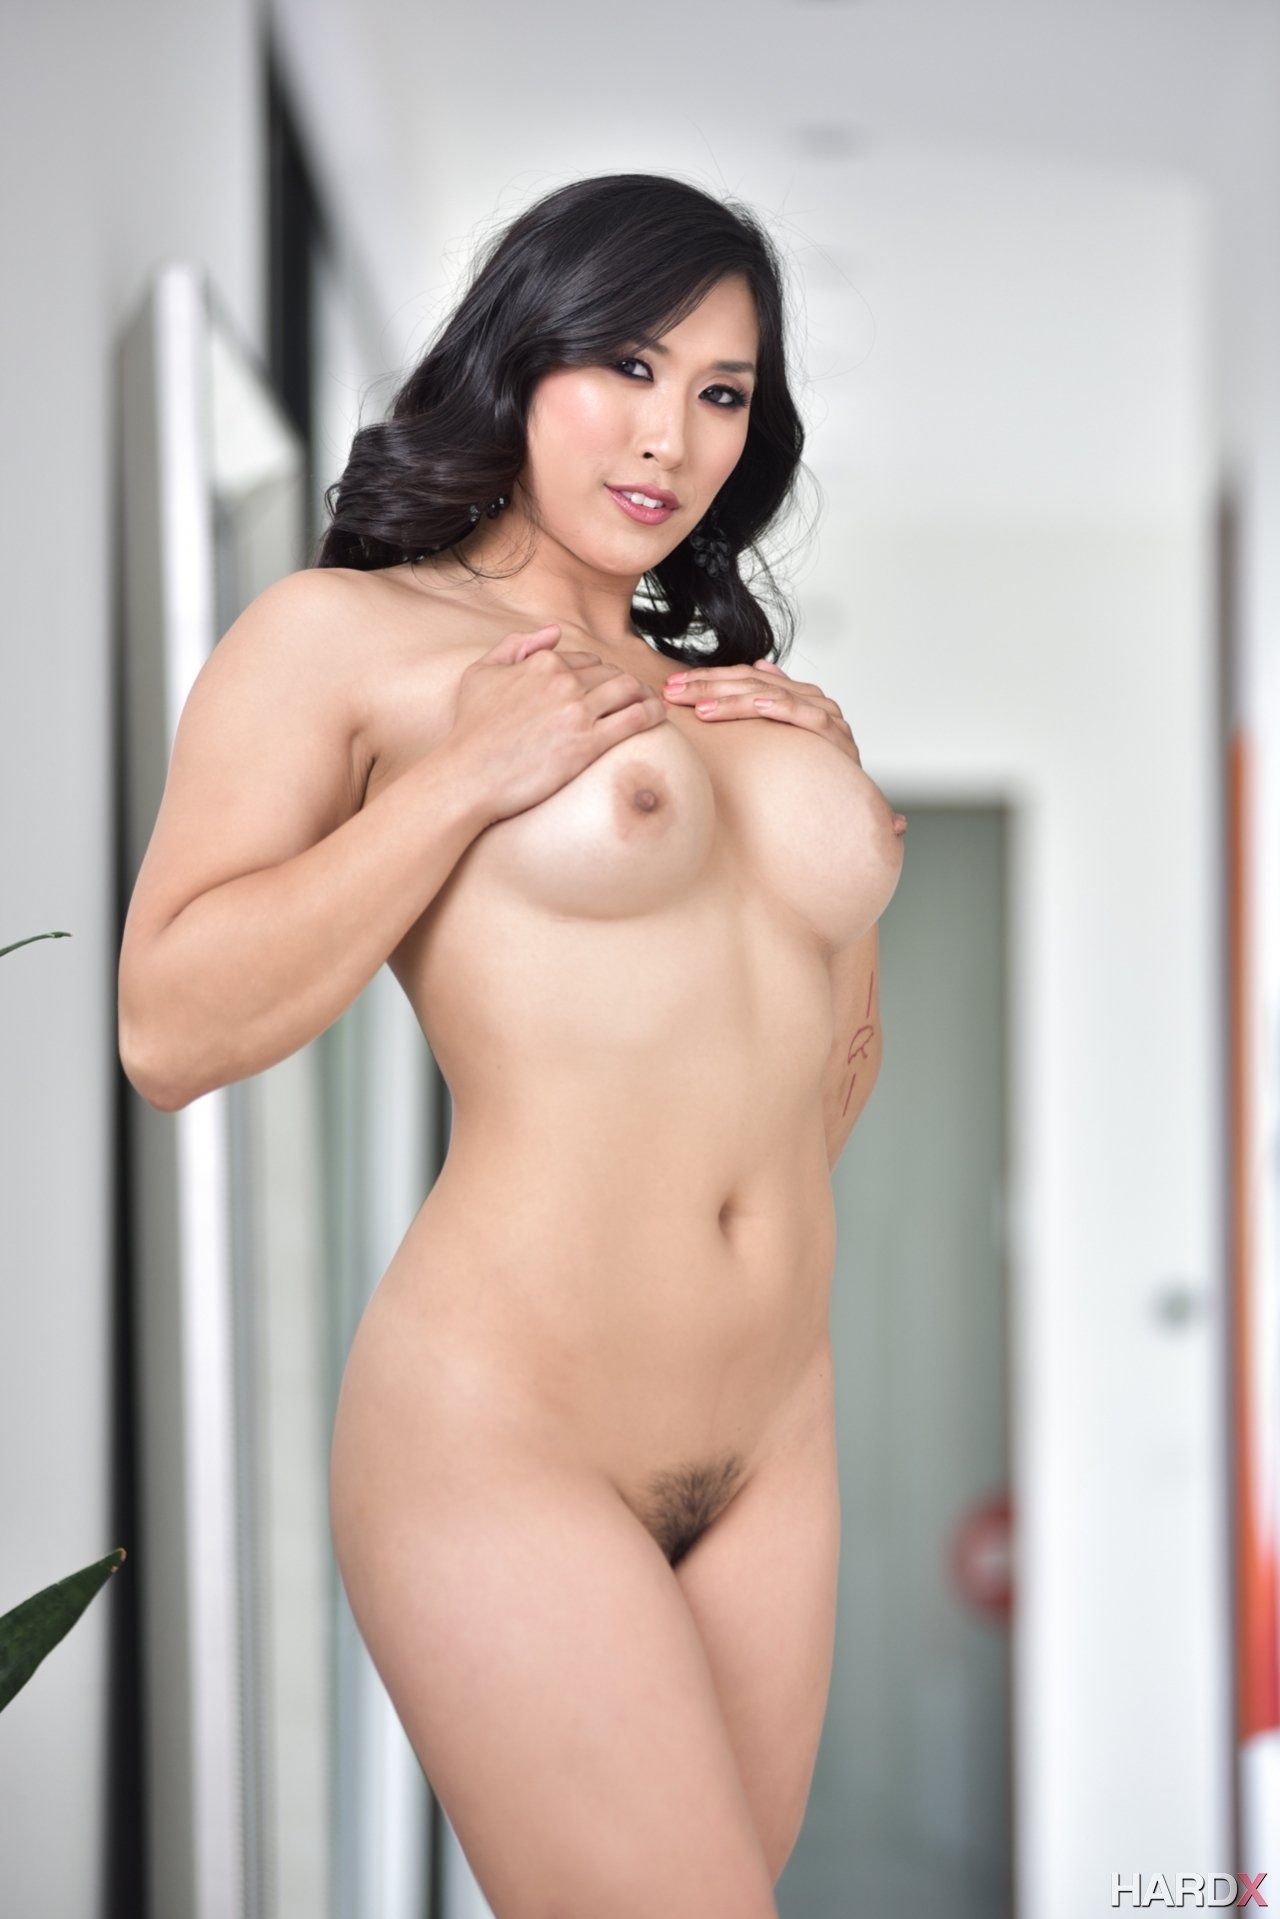 Hot naked girls home id share